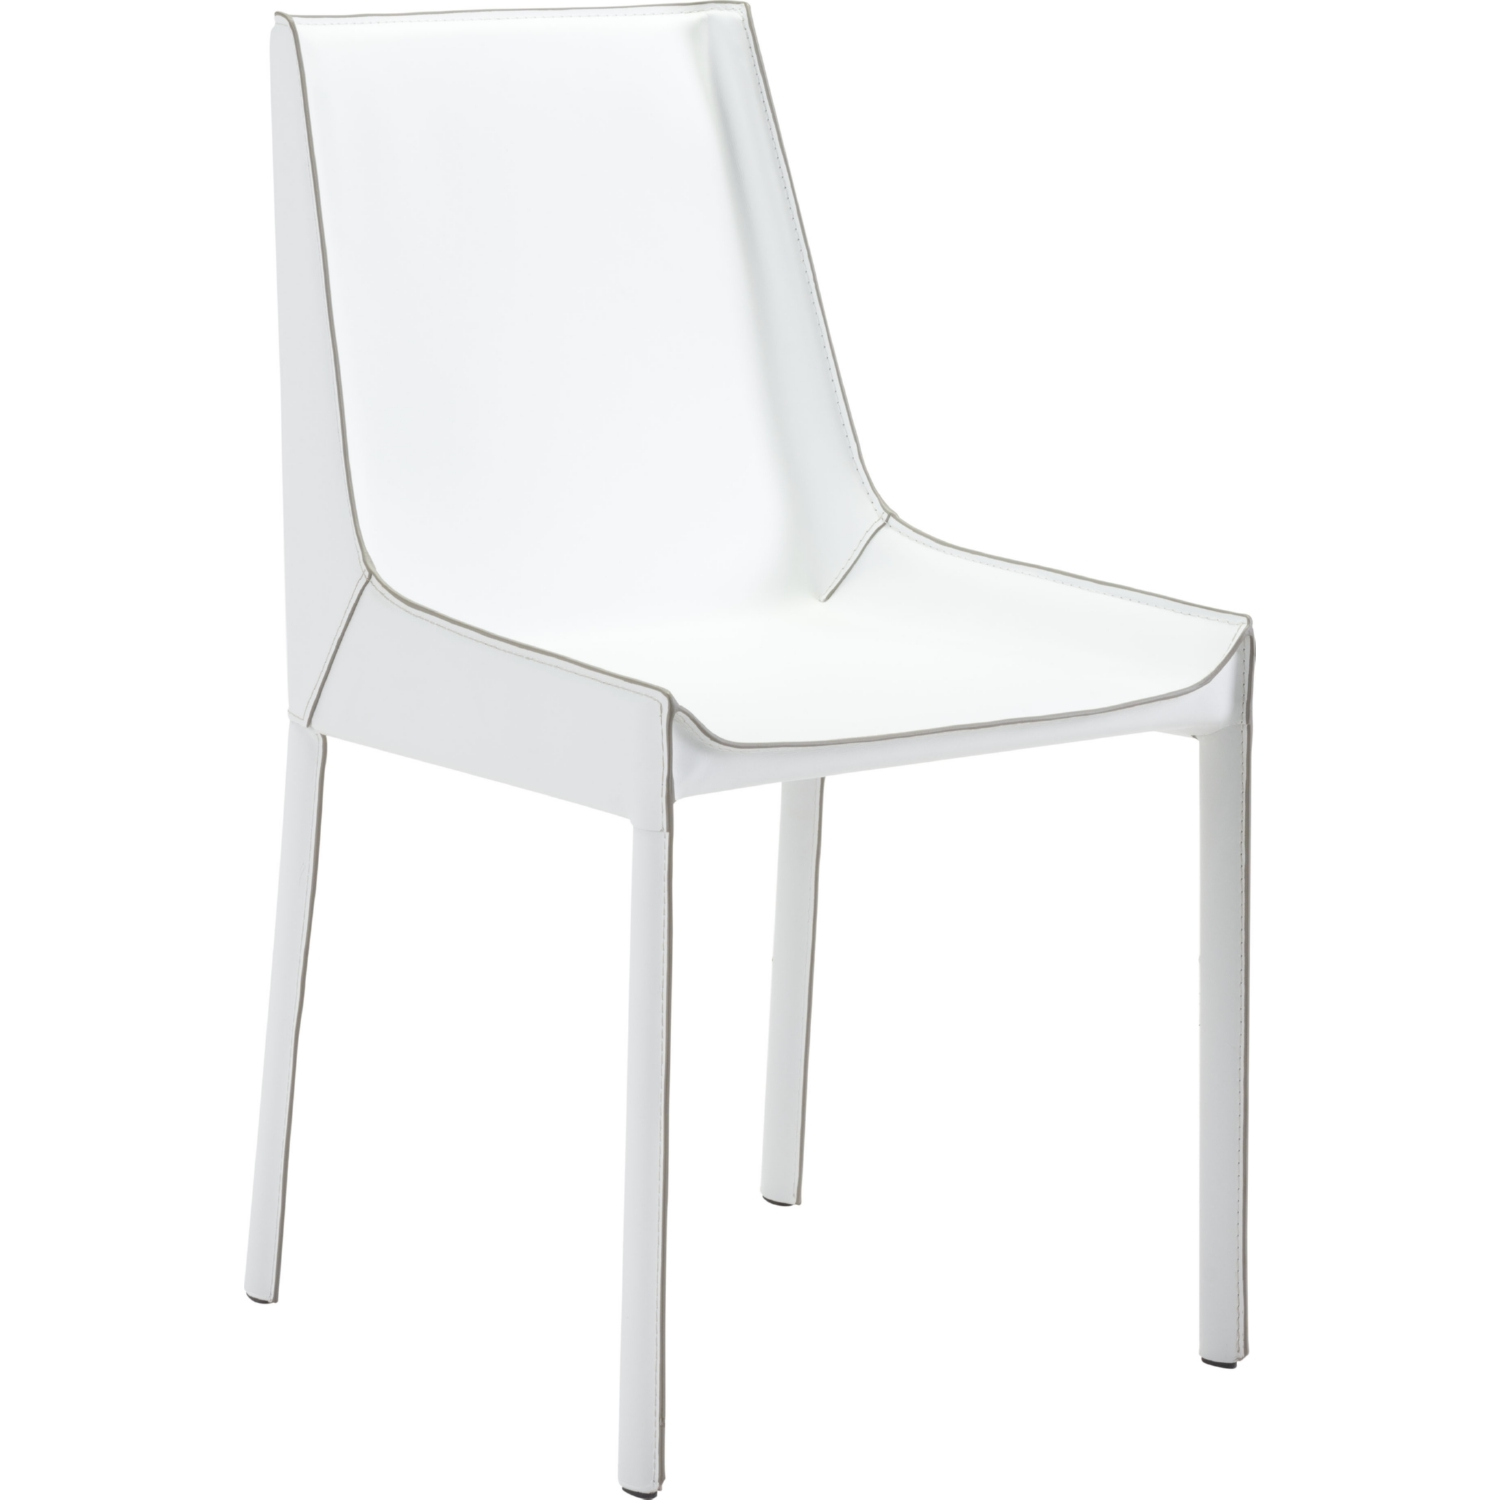 Remarkable Fashion Dining Chair In White Recycled Leather W Exposed Seam Set Of 2 By Zuo Gmtry Best Dining Table And Chair Ideas Images Gmtryco